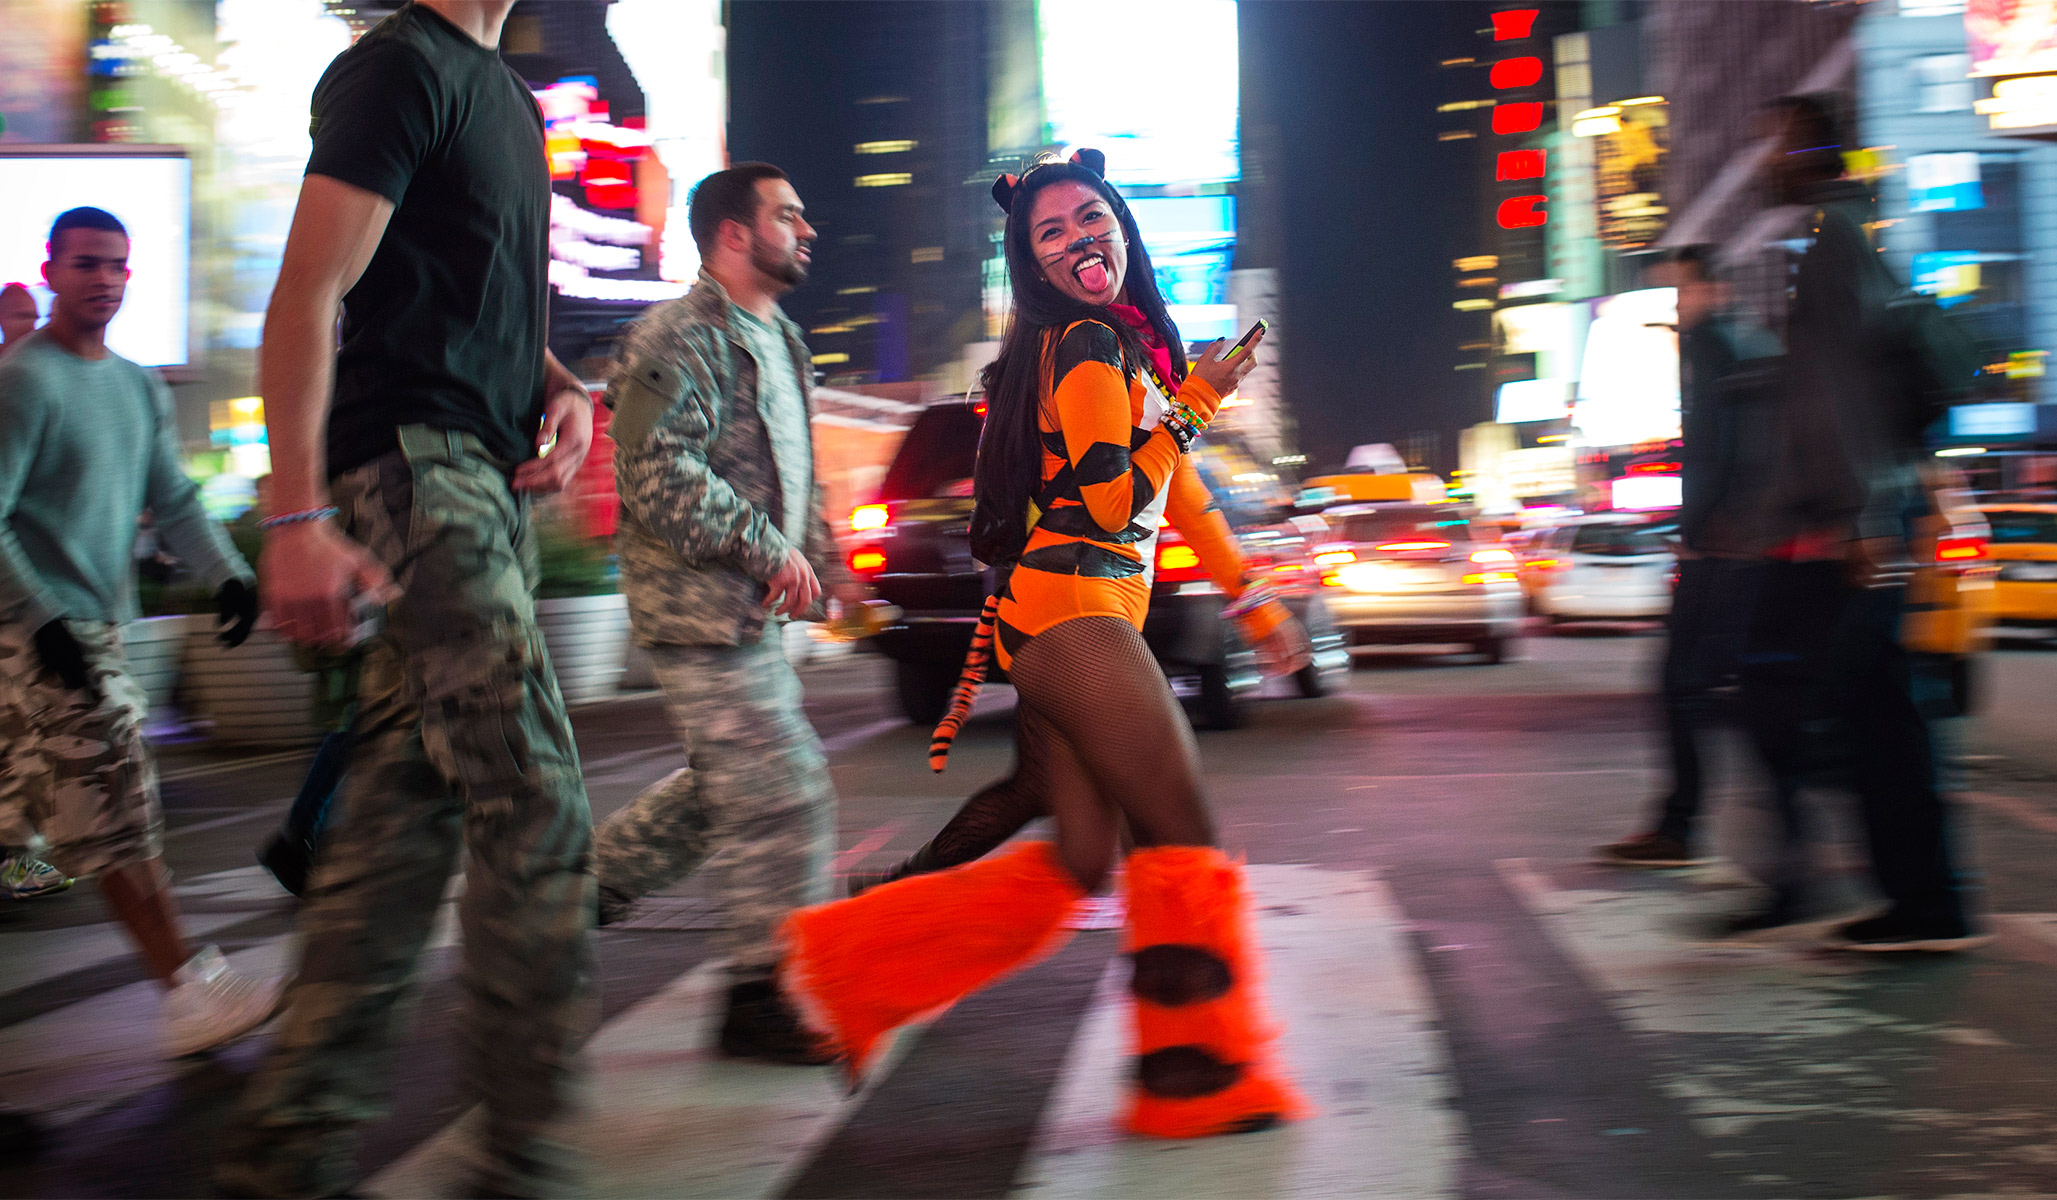 sexualized halloween costumes: not dangerous | national review